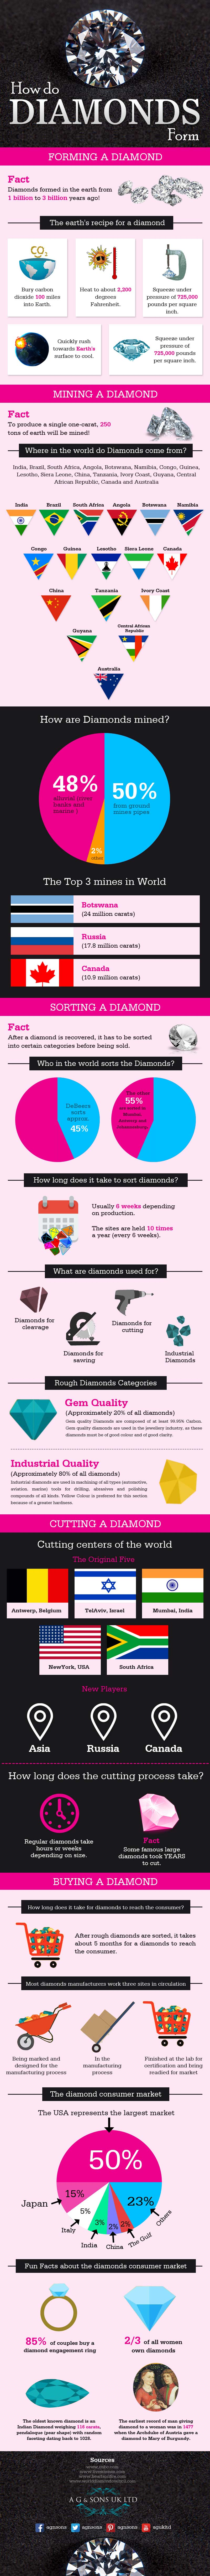 How Do Diamonds Form